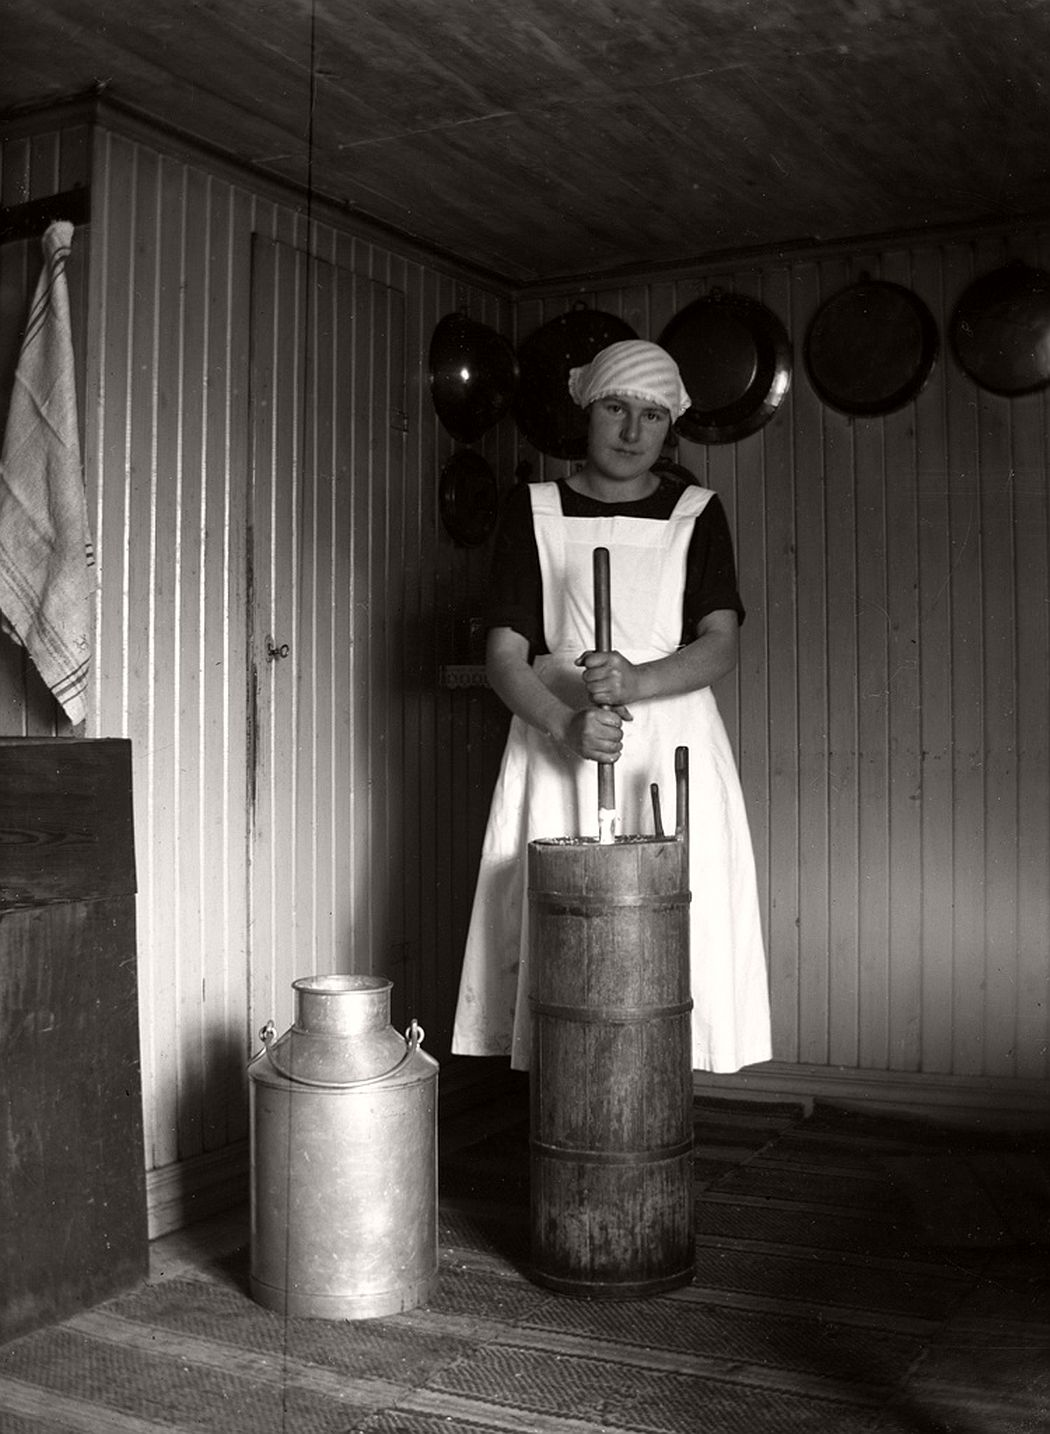 Ulla Göransson churning butter in the old way, ca 1920.